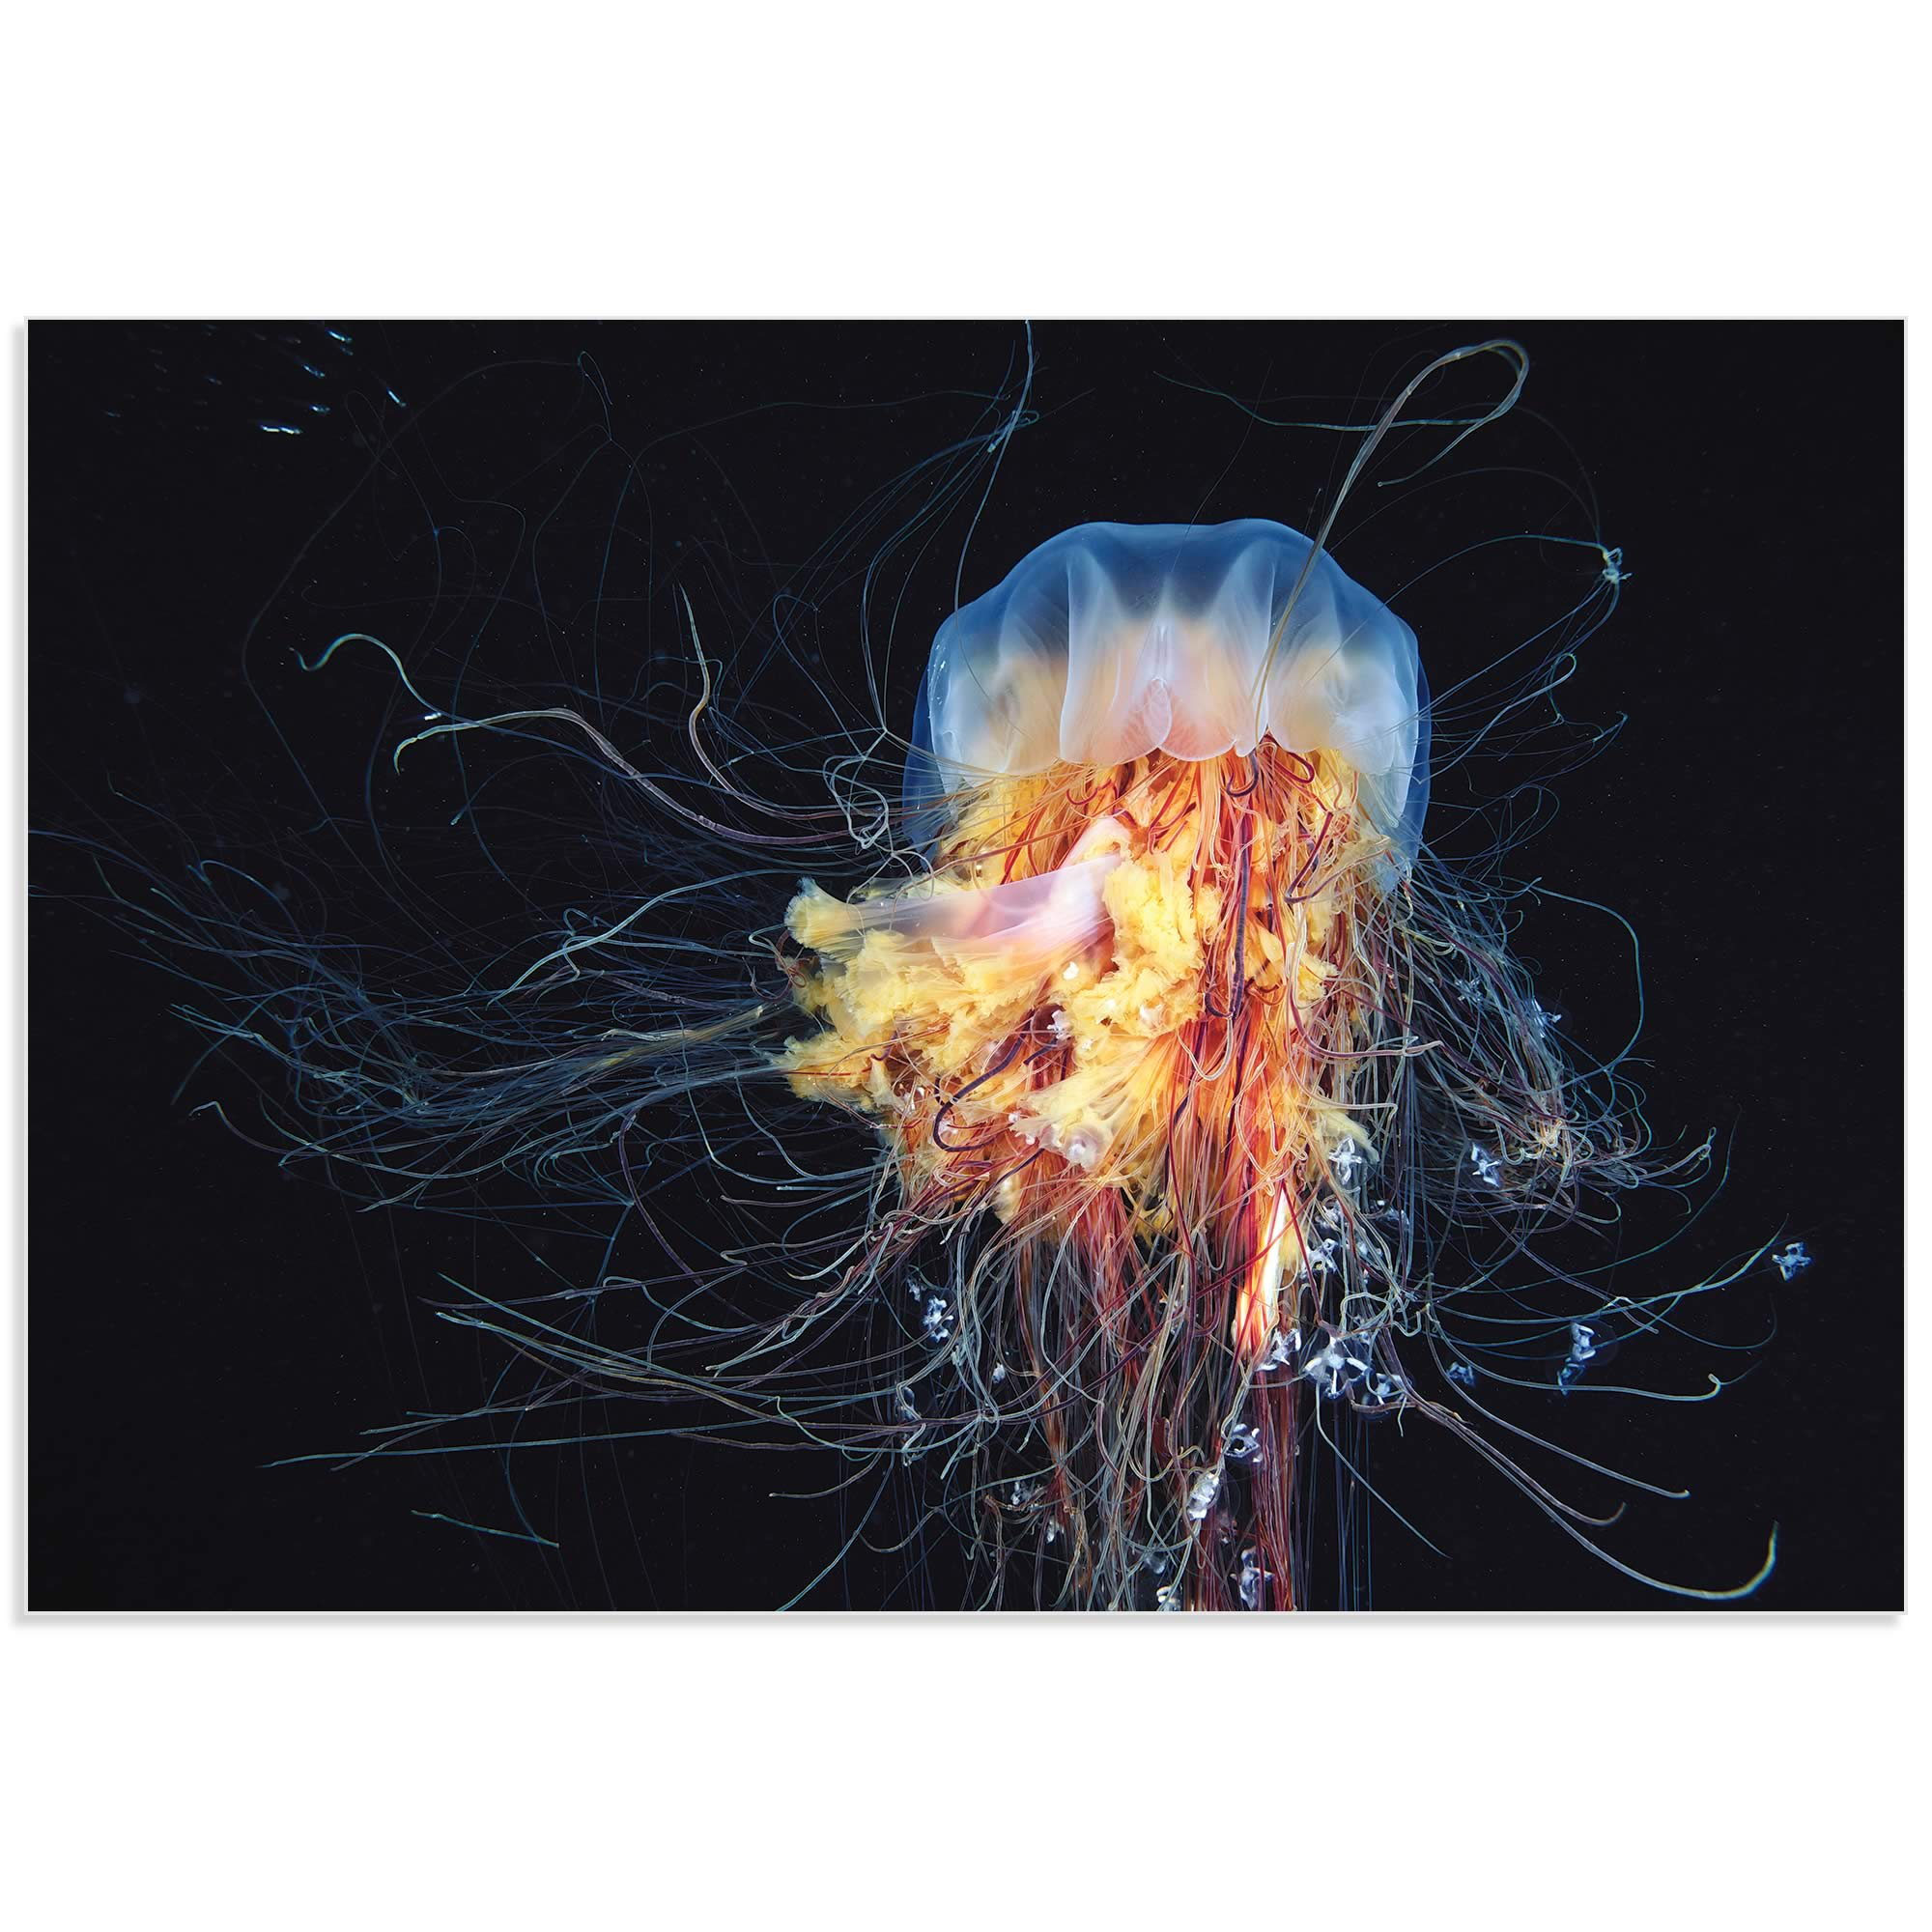 Lions Mane Jellyfish by Alexander Semenov - Jellyfish Art on Metal or Acrylic - Alternate View 2